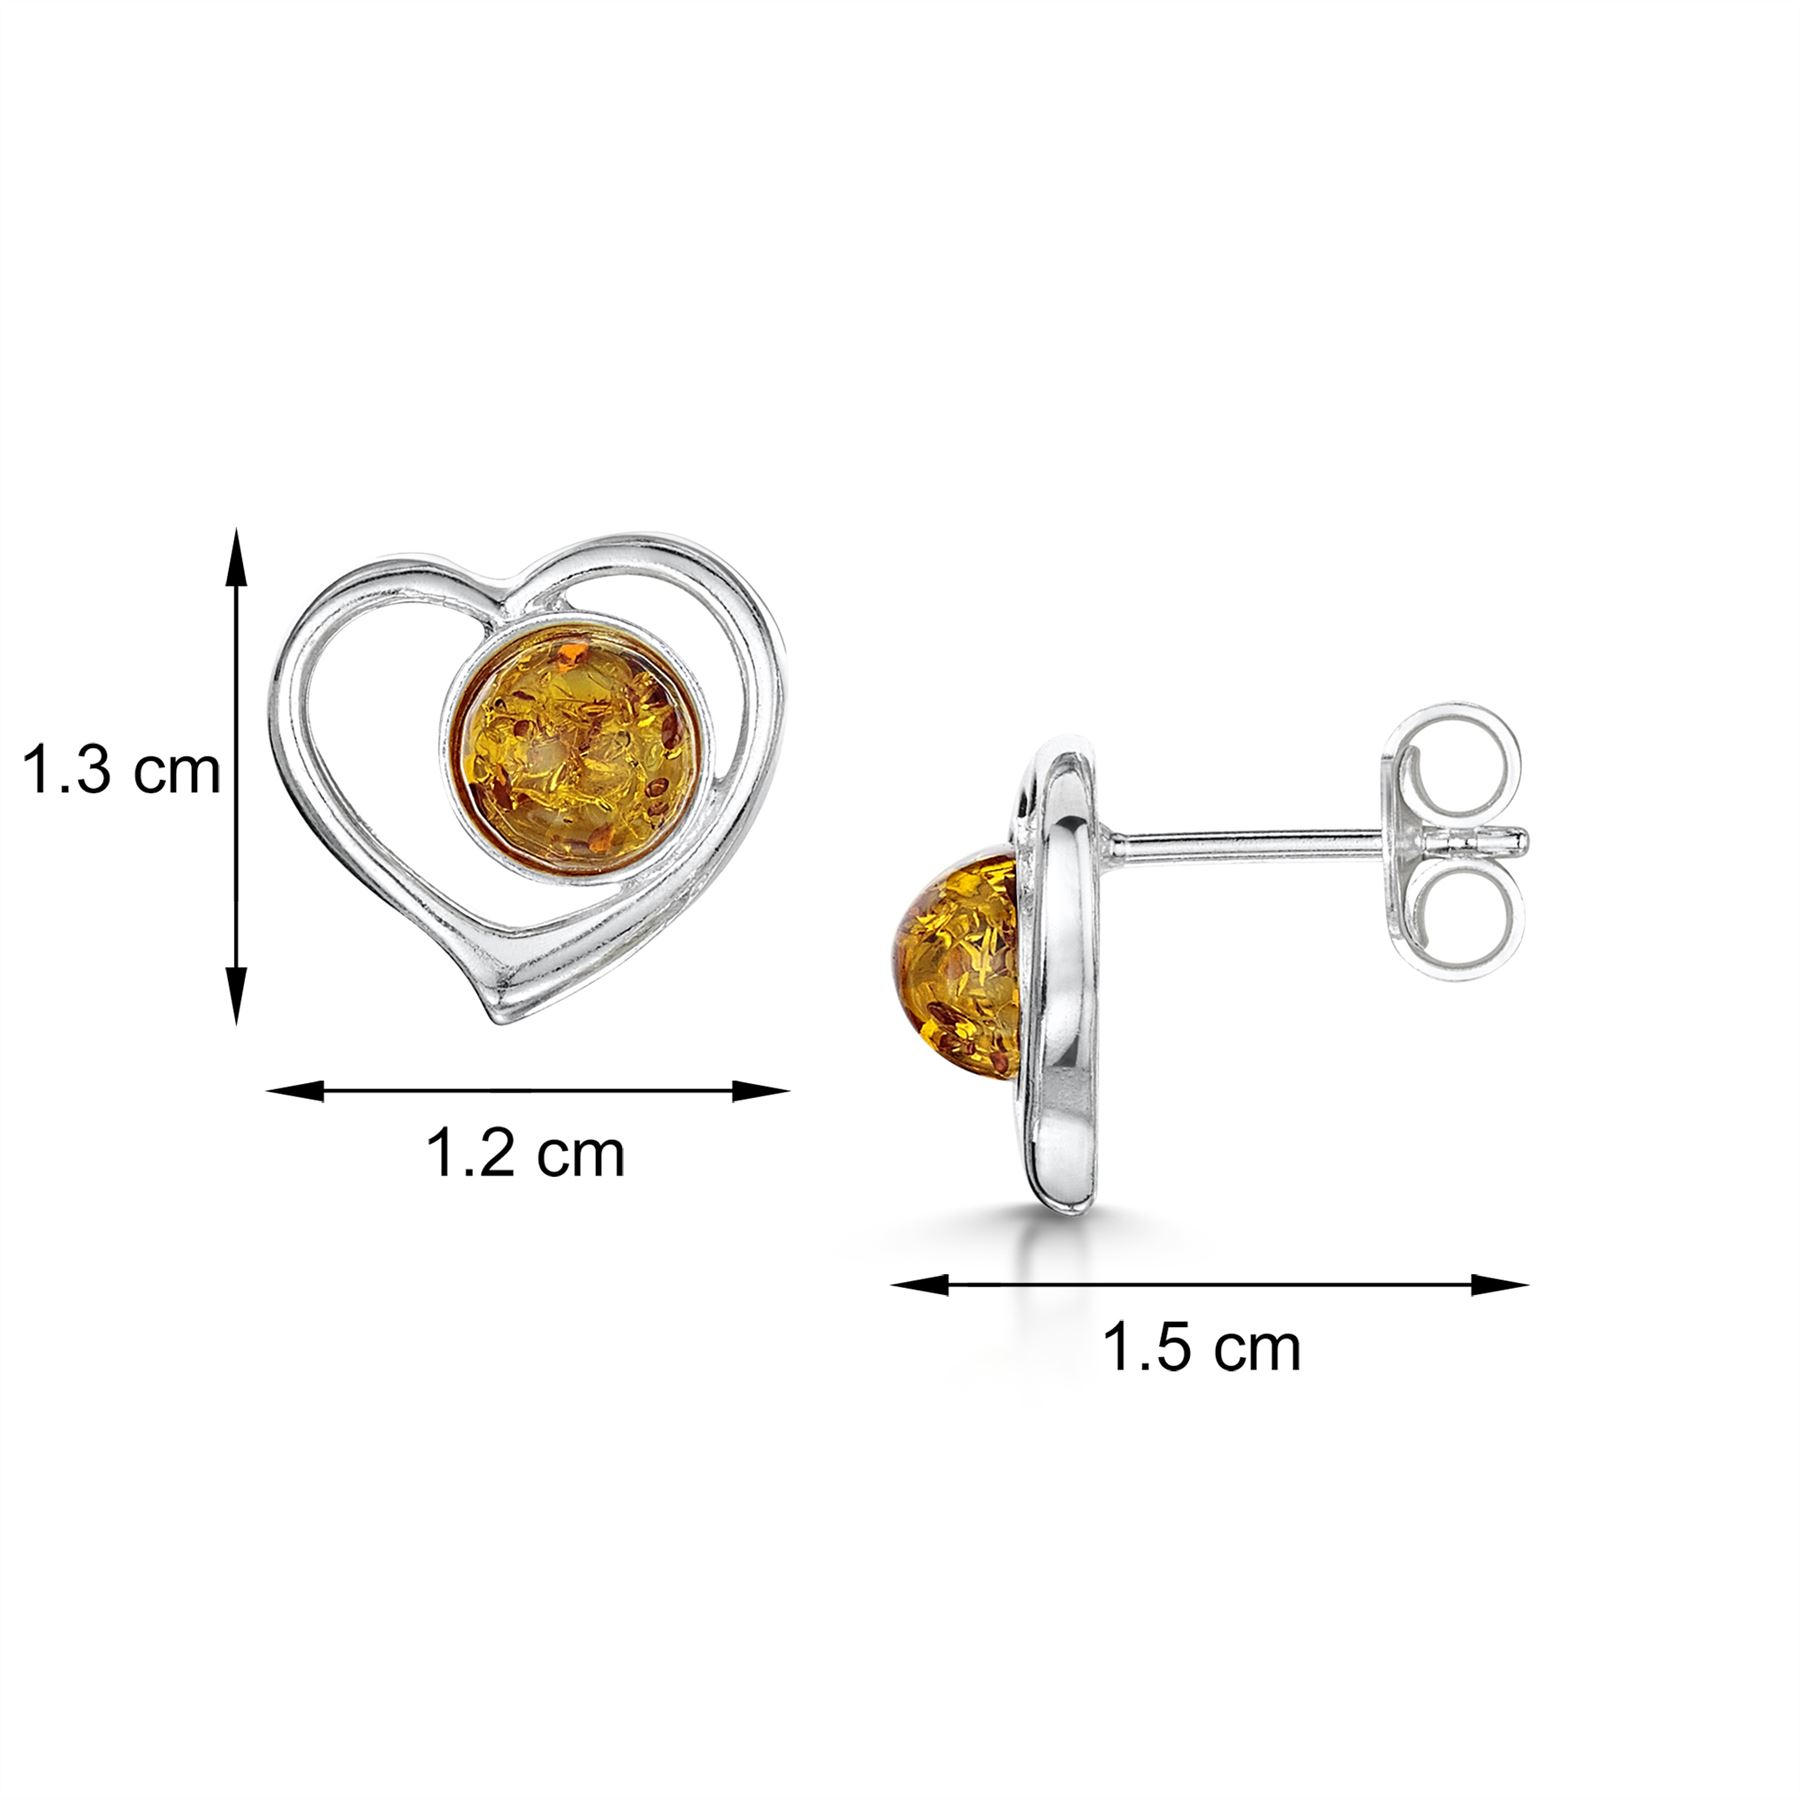 Amberta-Genuine-925-Sterling-Silver-Earrings-with-Natural-Baltic-Amber-Gemstone thumbnail 82